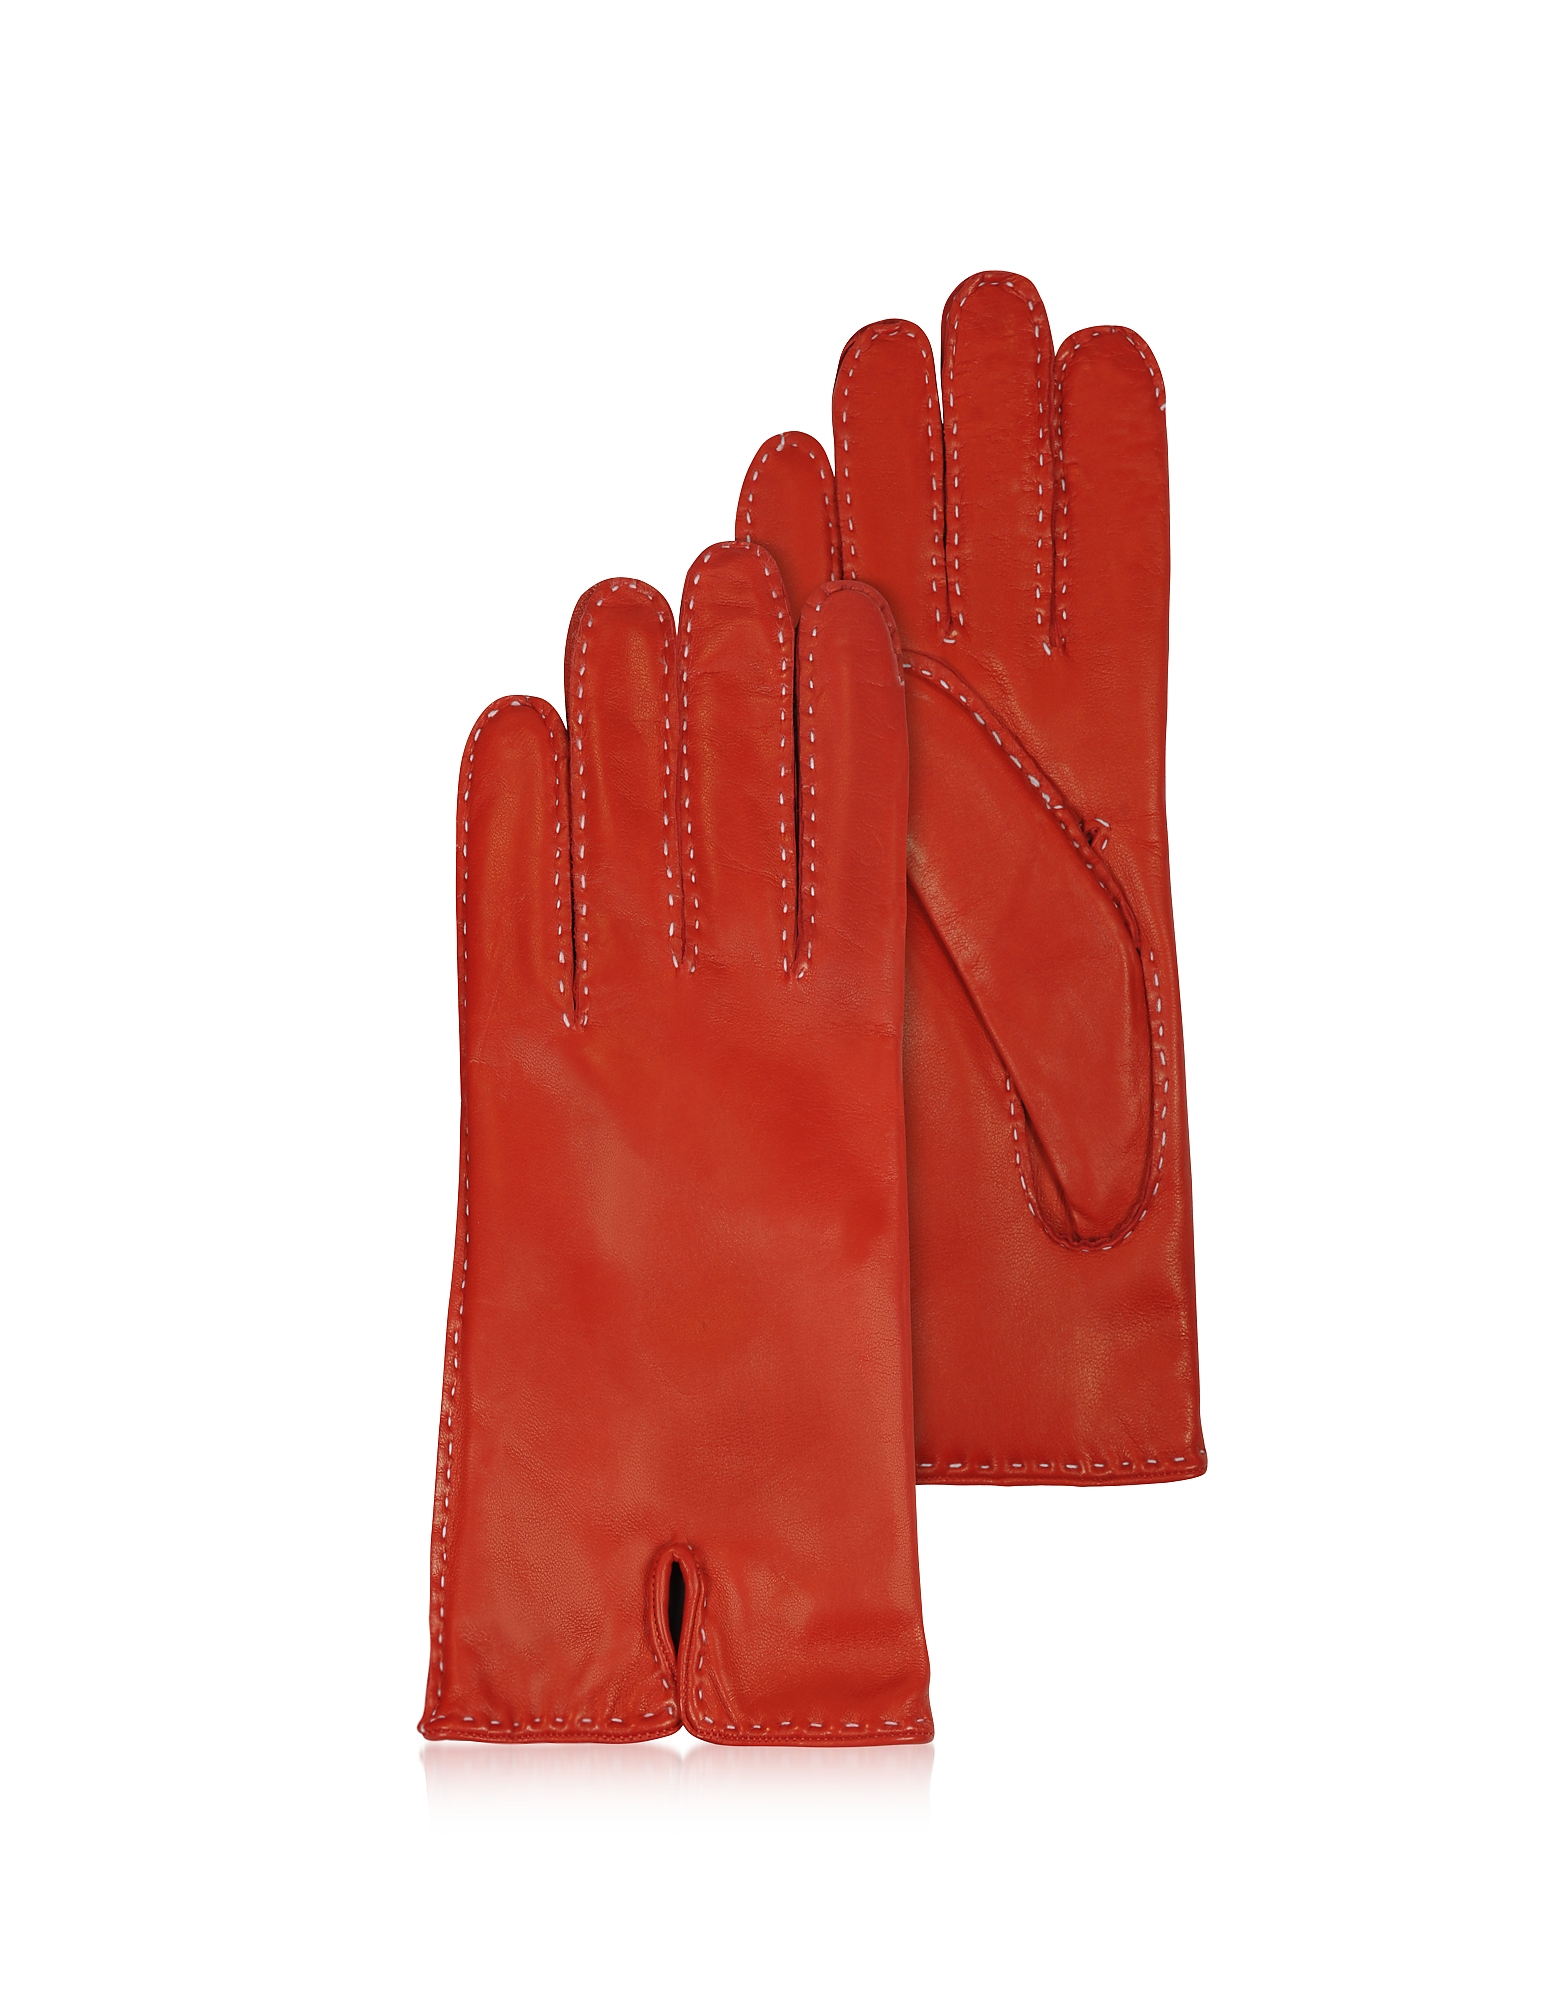 Forzieri Women's Gloves, Women's Stitched Cashmere Lined Red Italian Leather Gloves